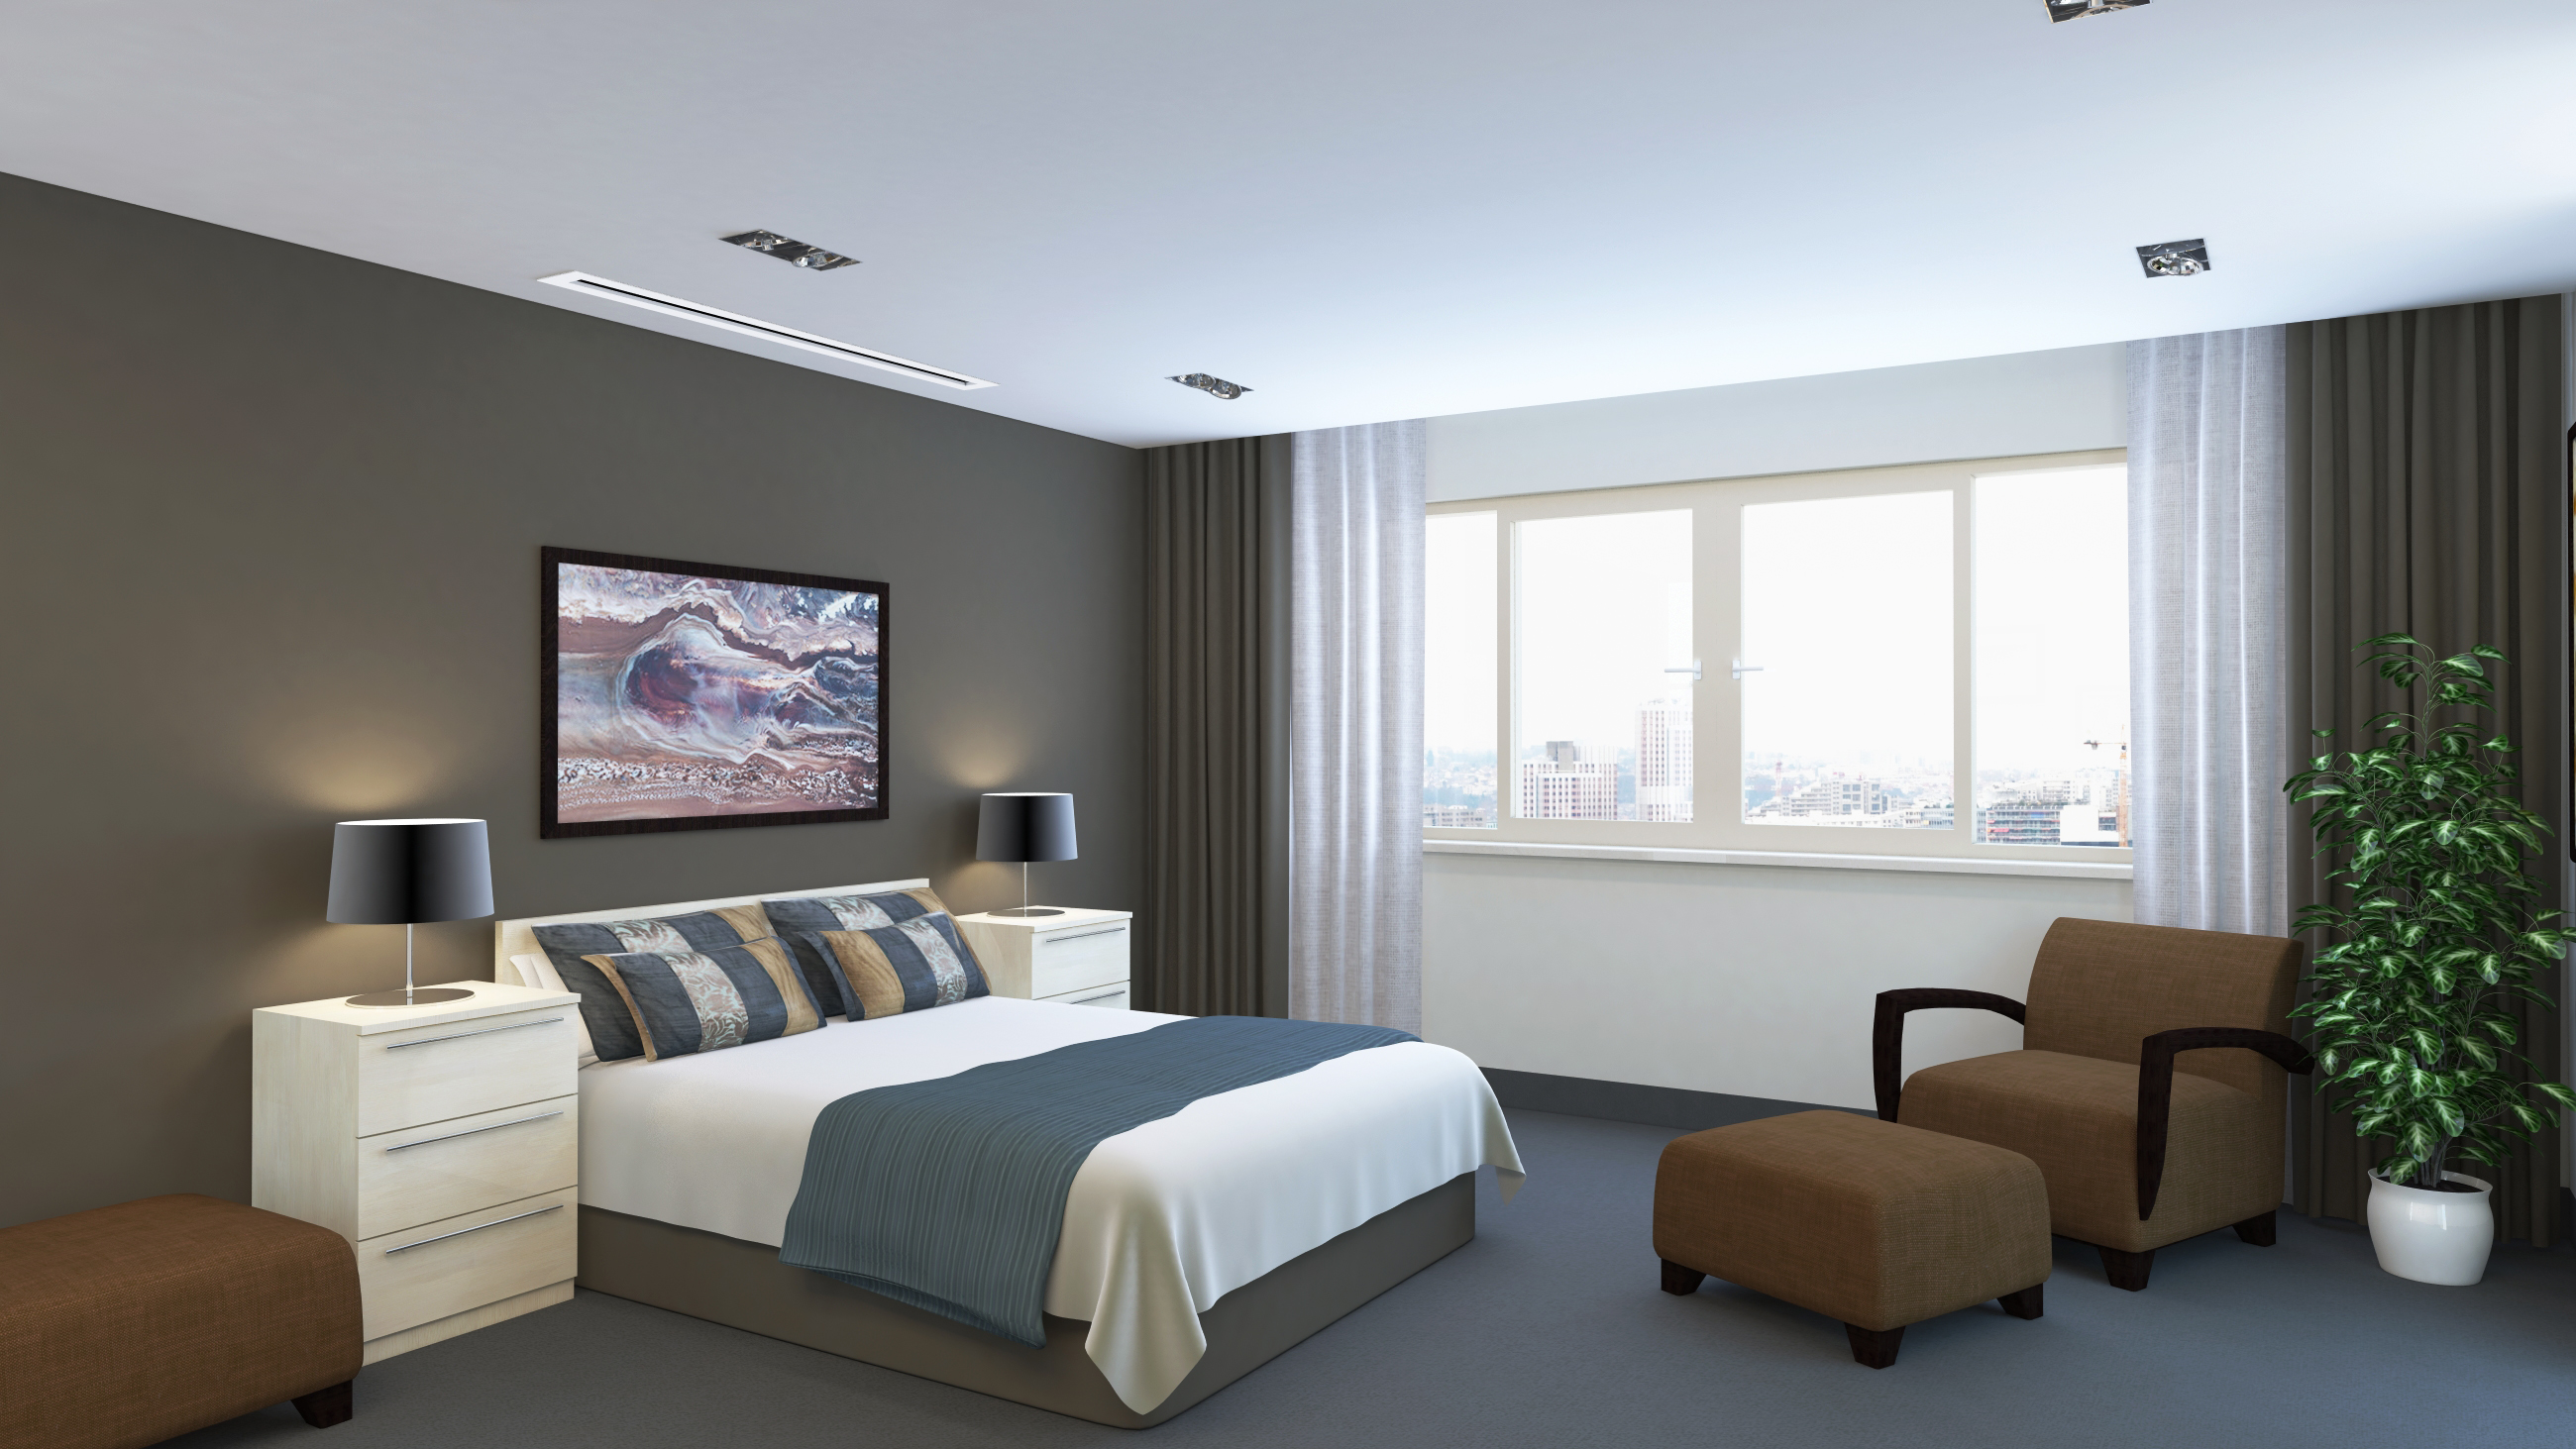 bedroom air conditioning installations expert aircon engineers. Black Bedroom Furniture Sets. Home Design Ideas